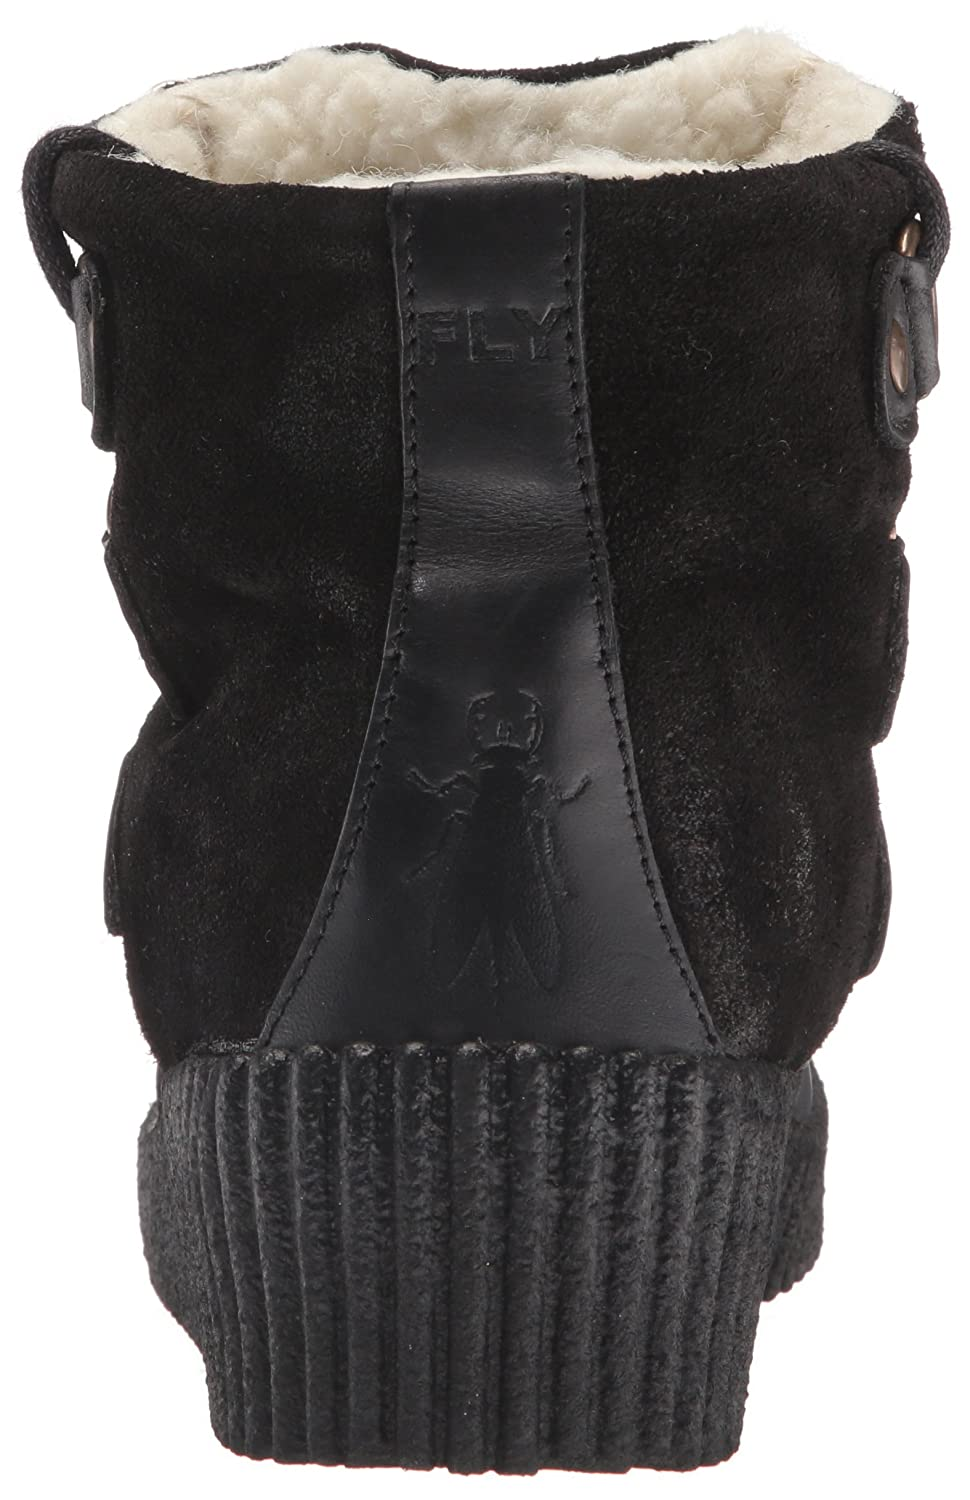 FLY London Women's Abat251fly Snow Boot B01CYL91H0 41 EU/10-10.5 M US|Black/Black Rug/Oil Suede